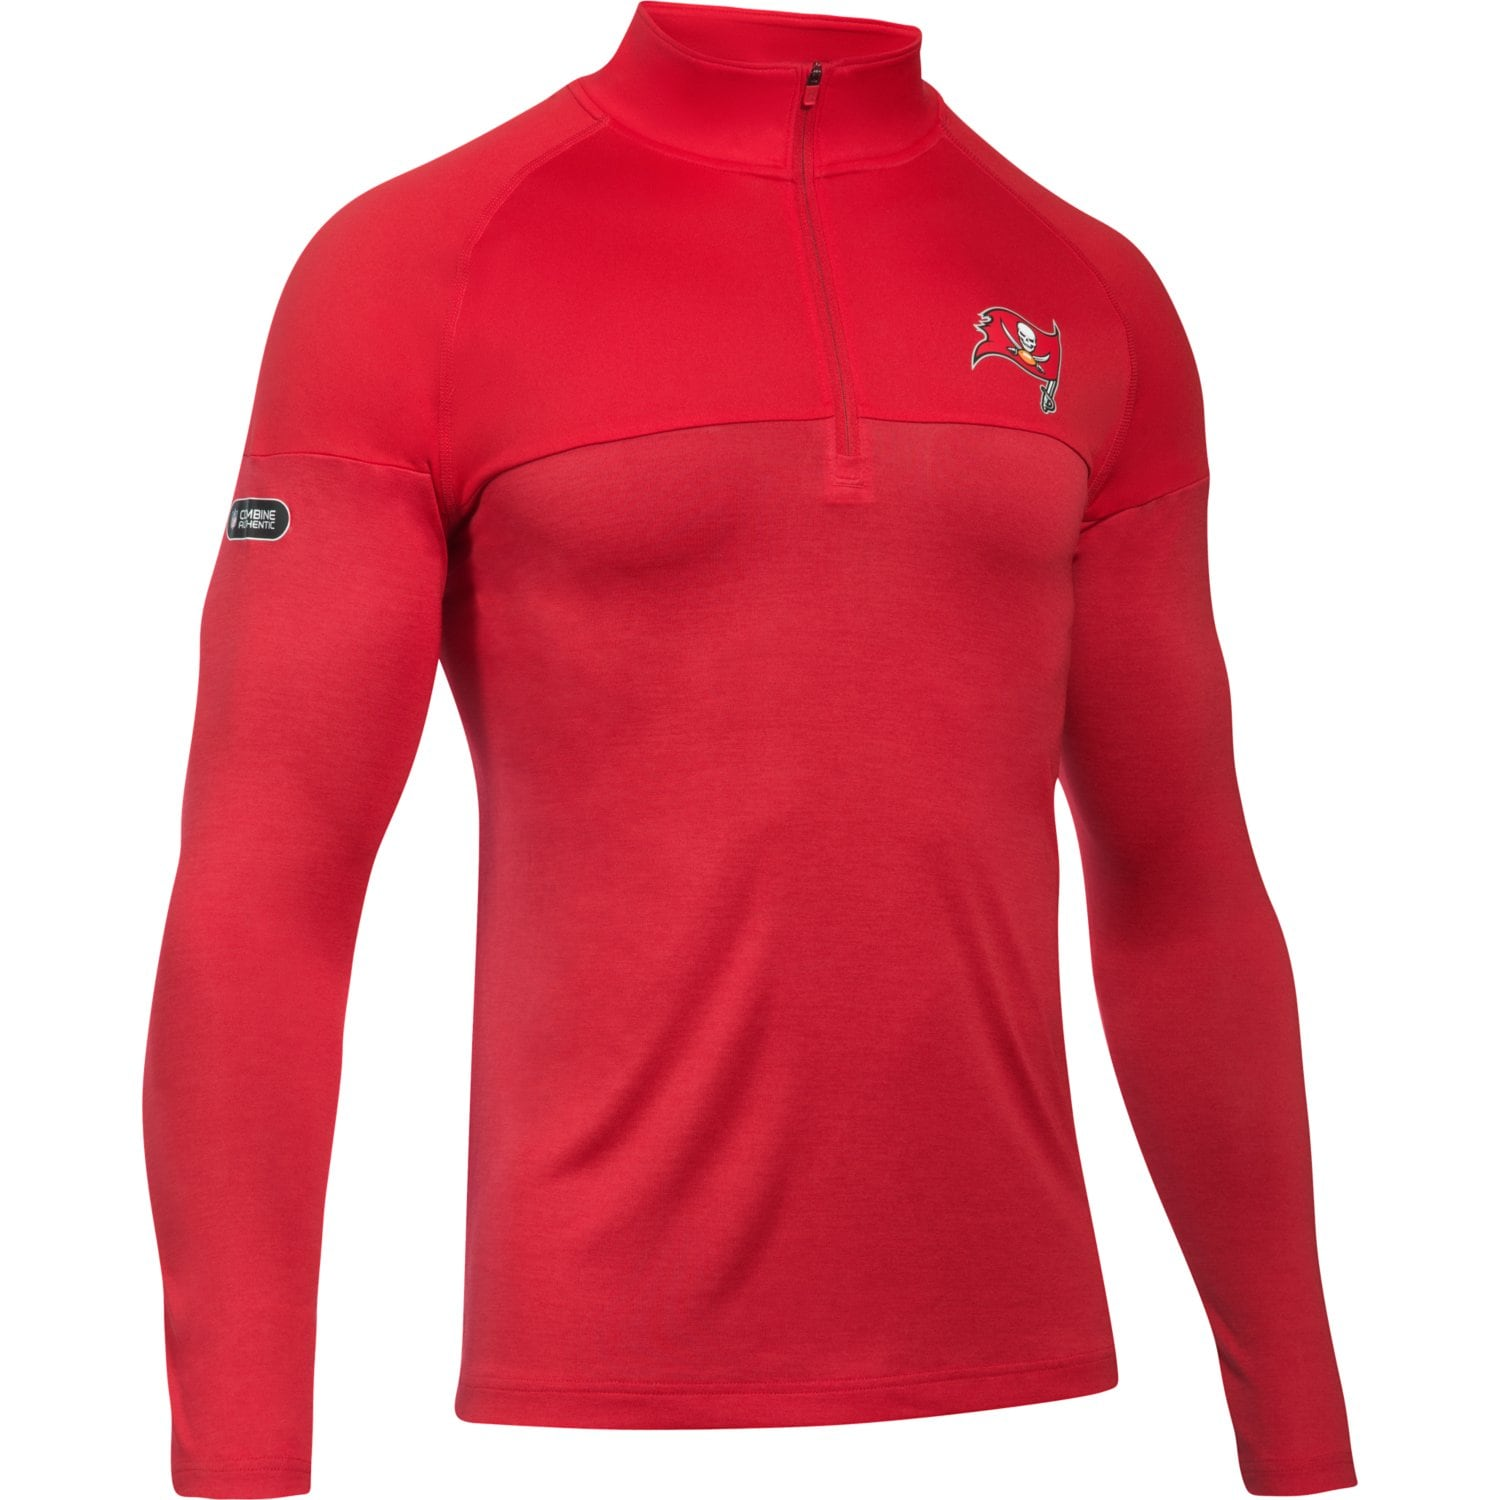 Tampa Bay Buccaneers Under Armour Combine Authentic Novelty Tech Quarter-Zip Pullover Jacket - Red